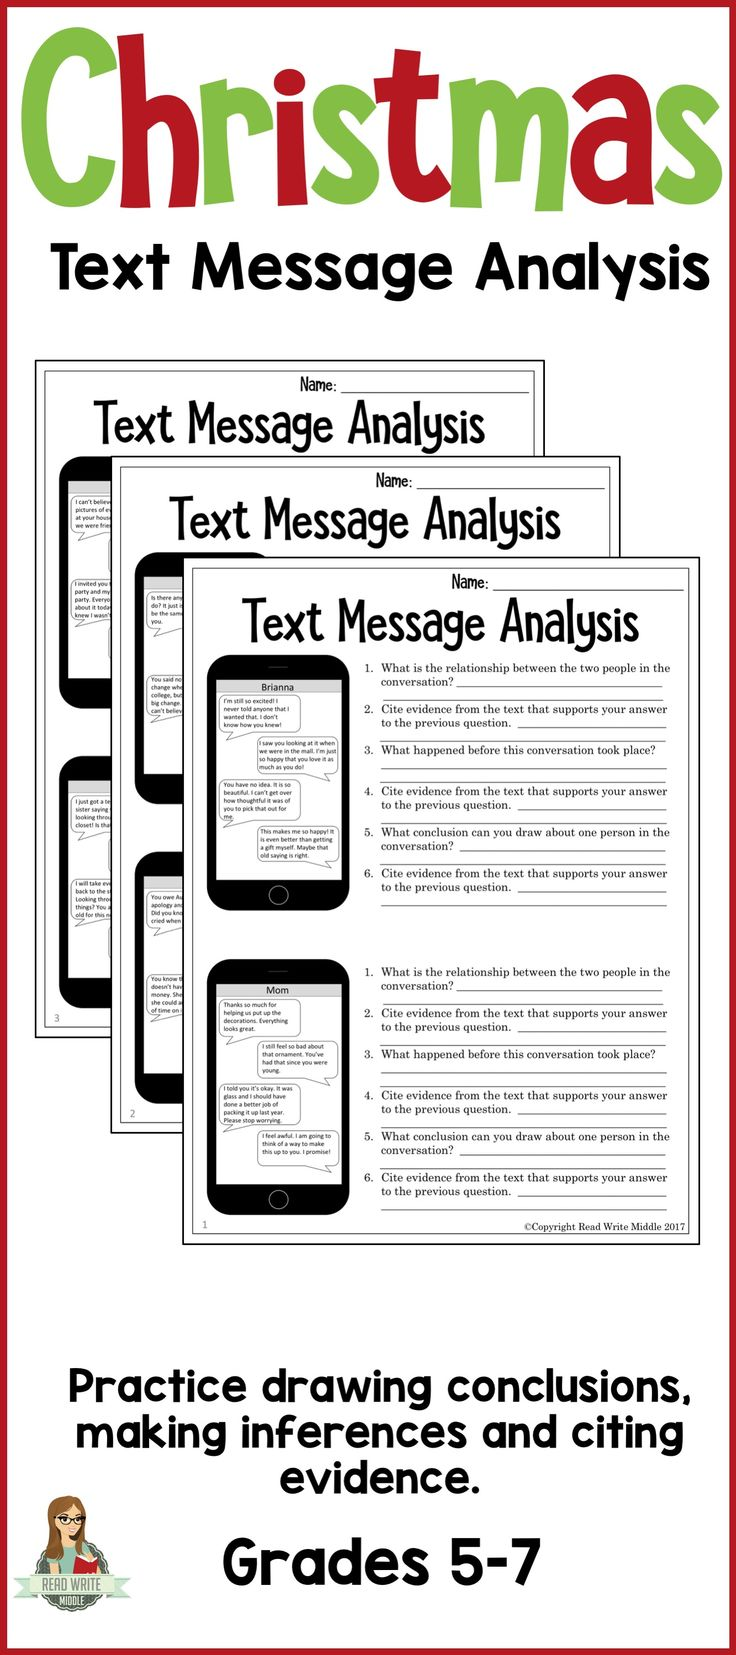 A perfect Christmas themed activity for students to practice making inferences and drawing conclusions. Students will love reading these text message conversations and citing evidence to support their inferences.